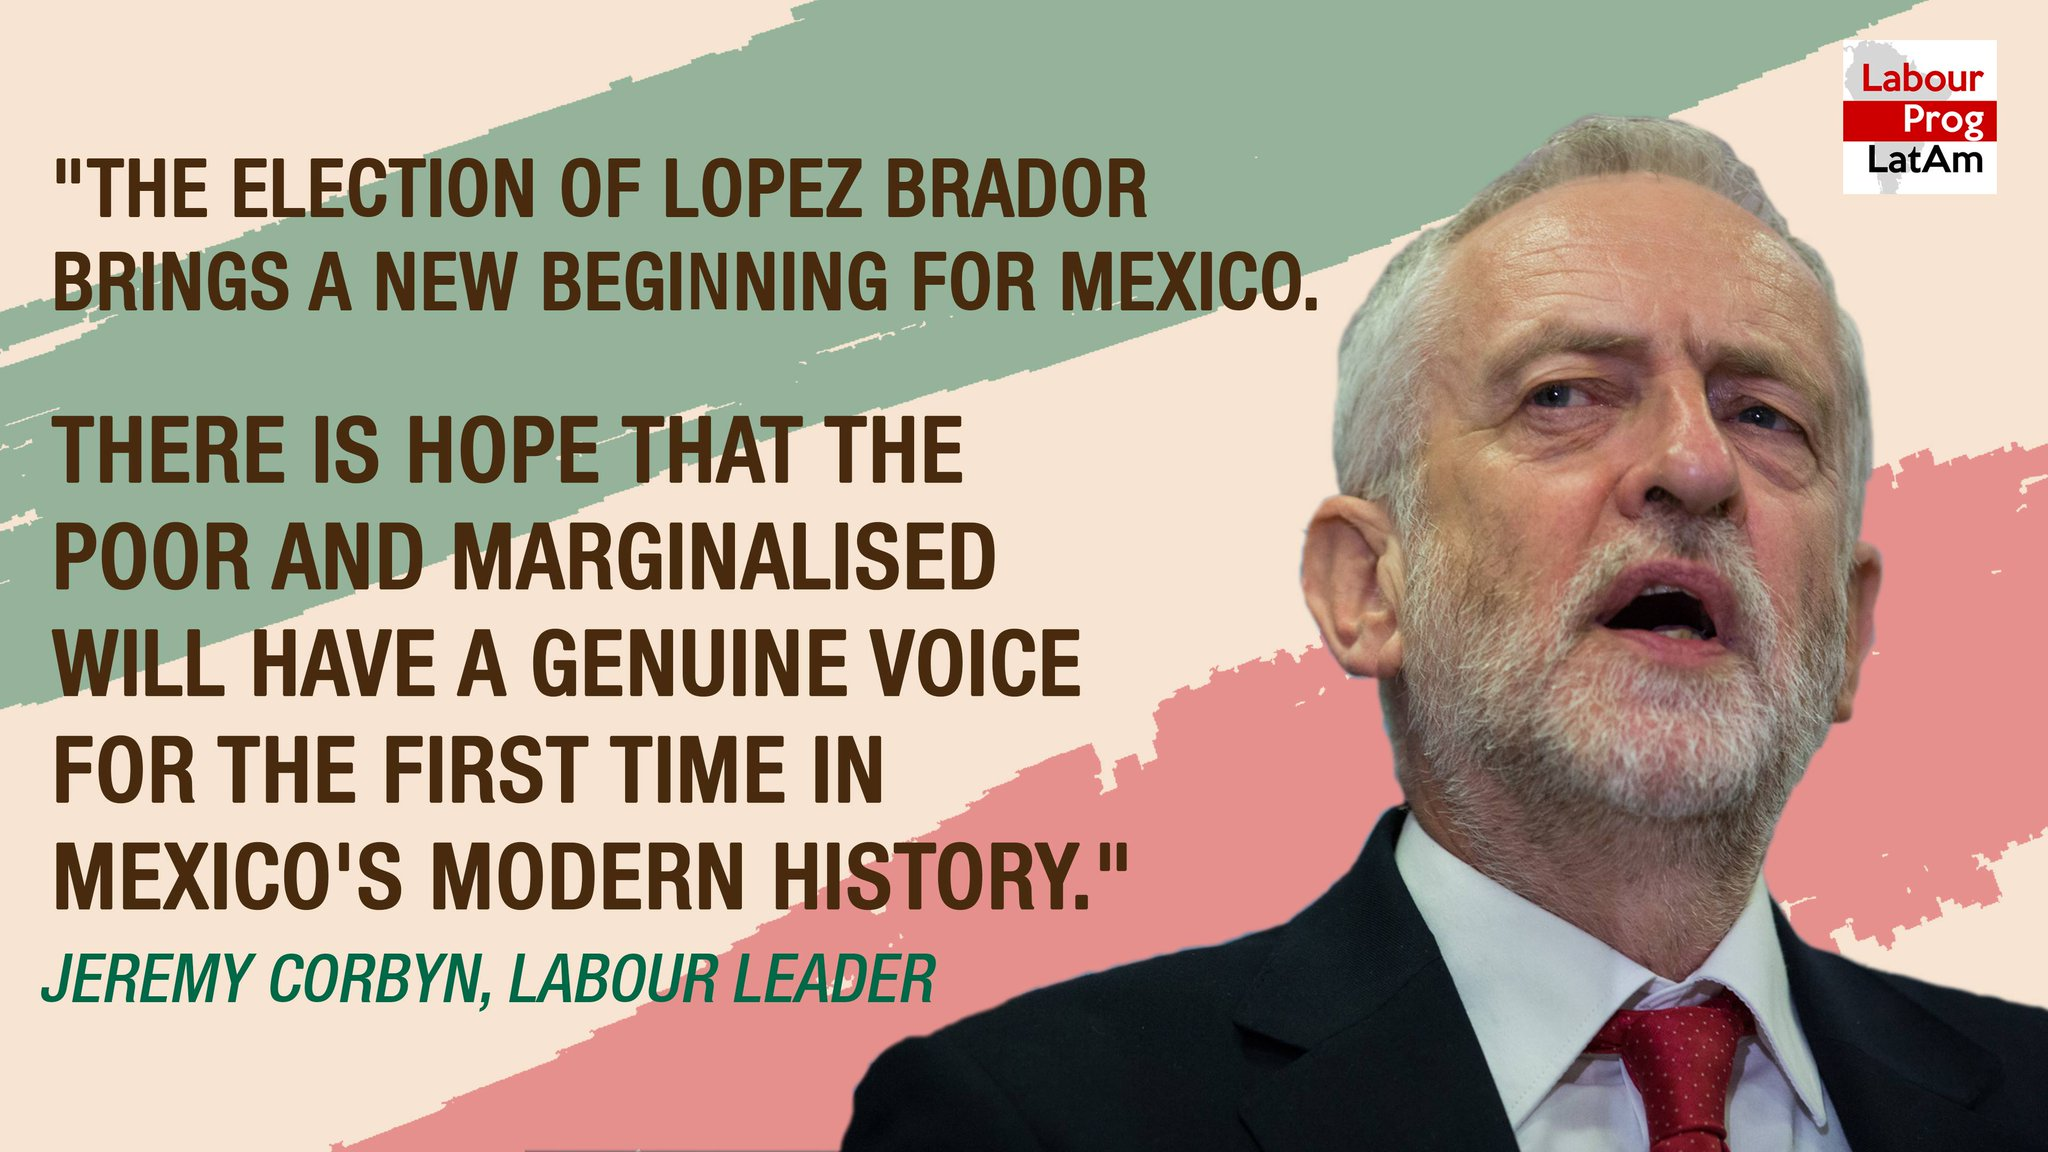 Corbyn on Mexico